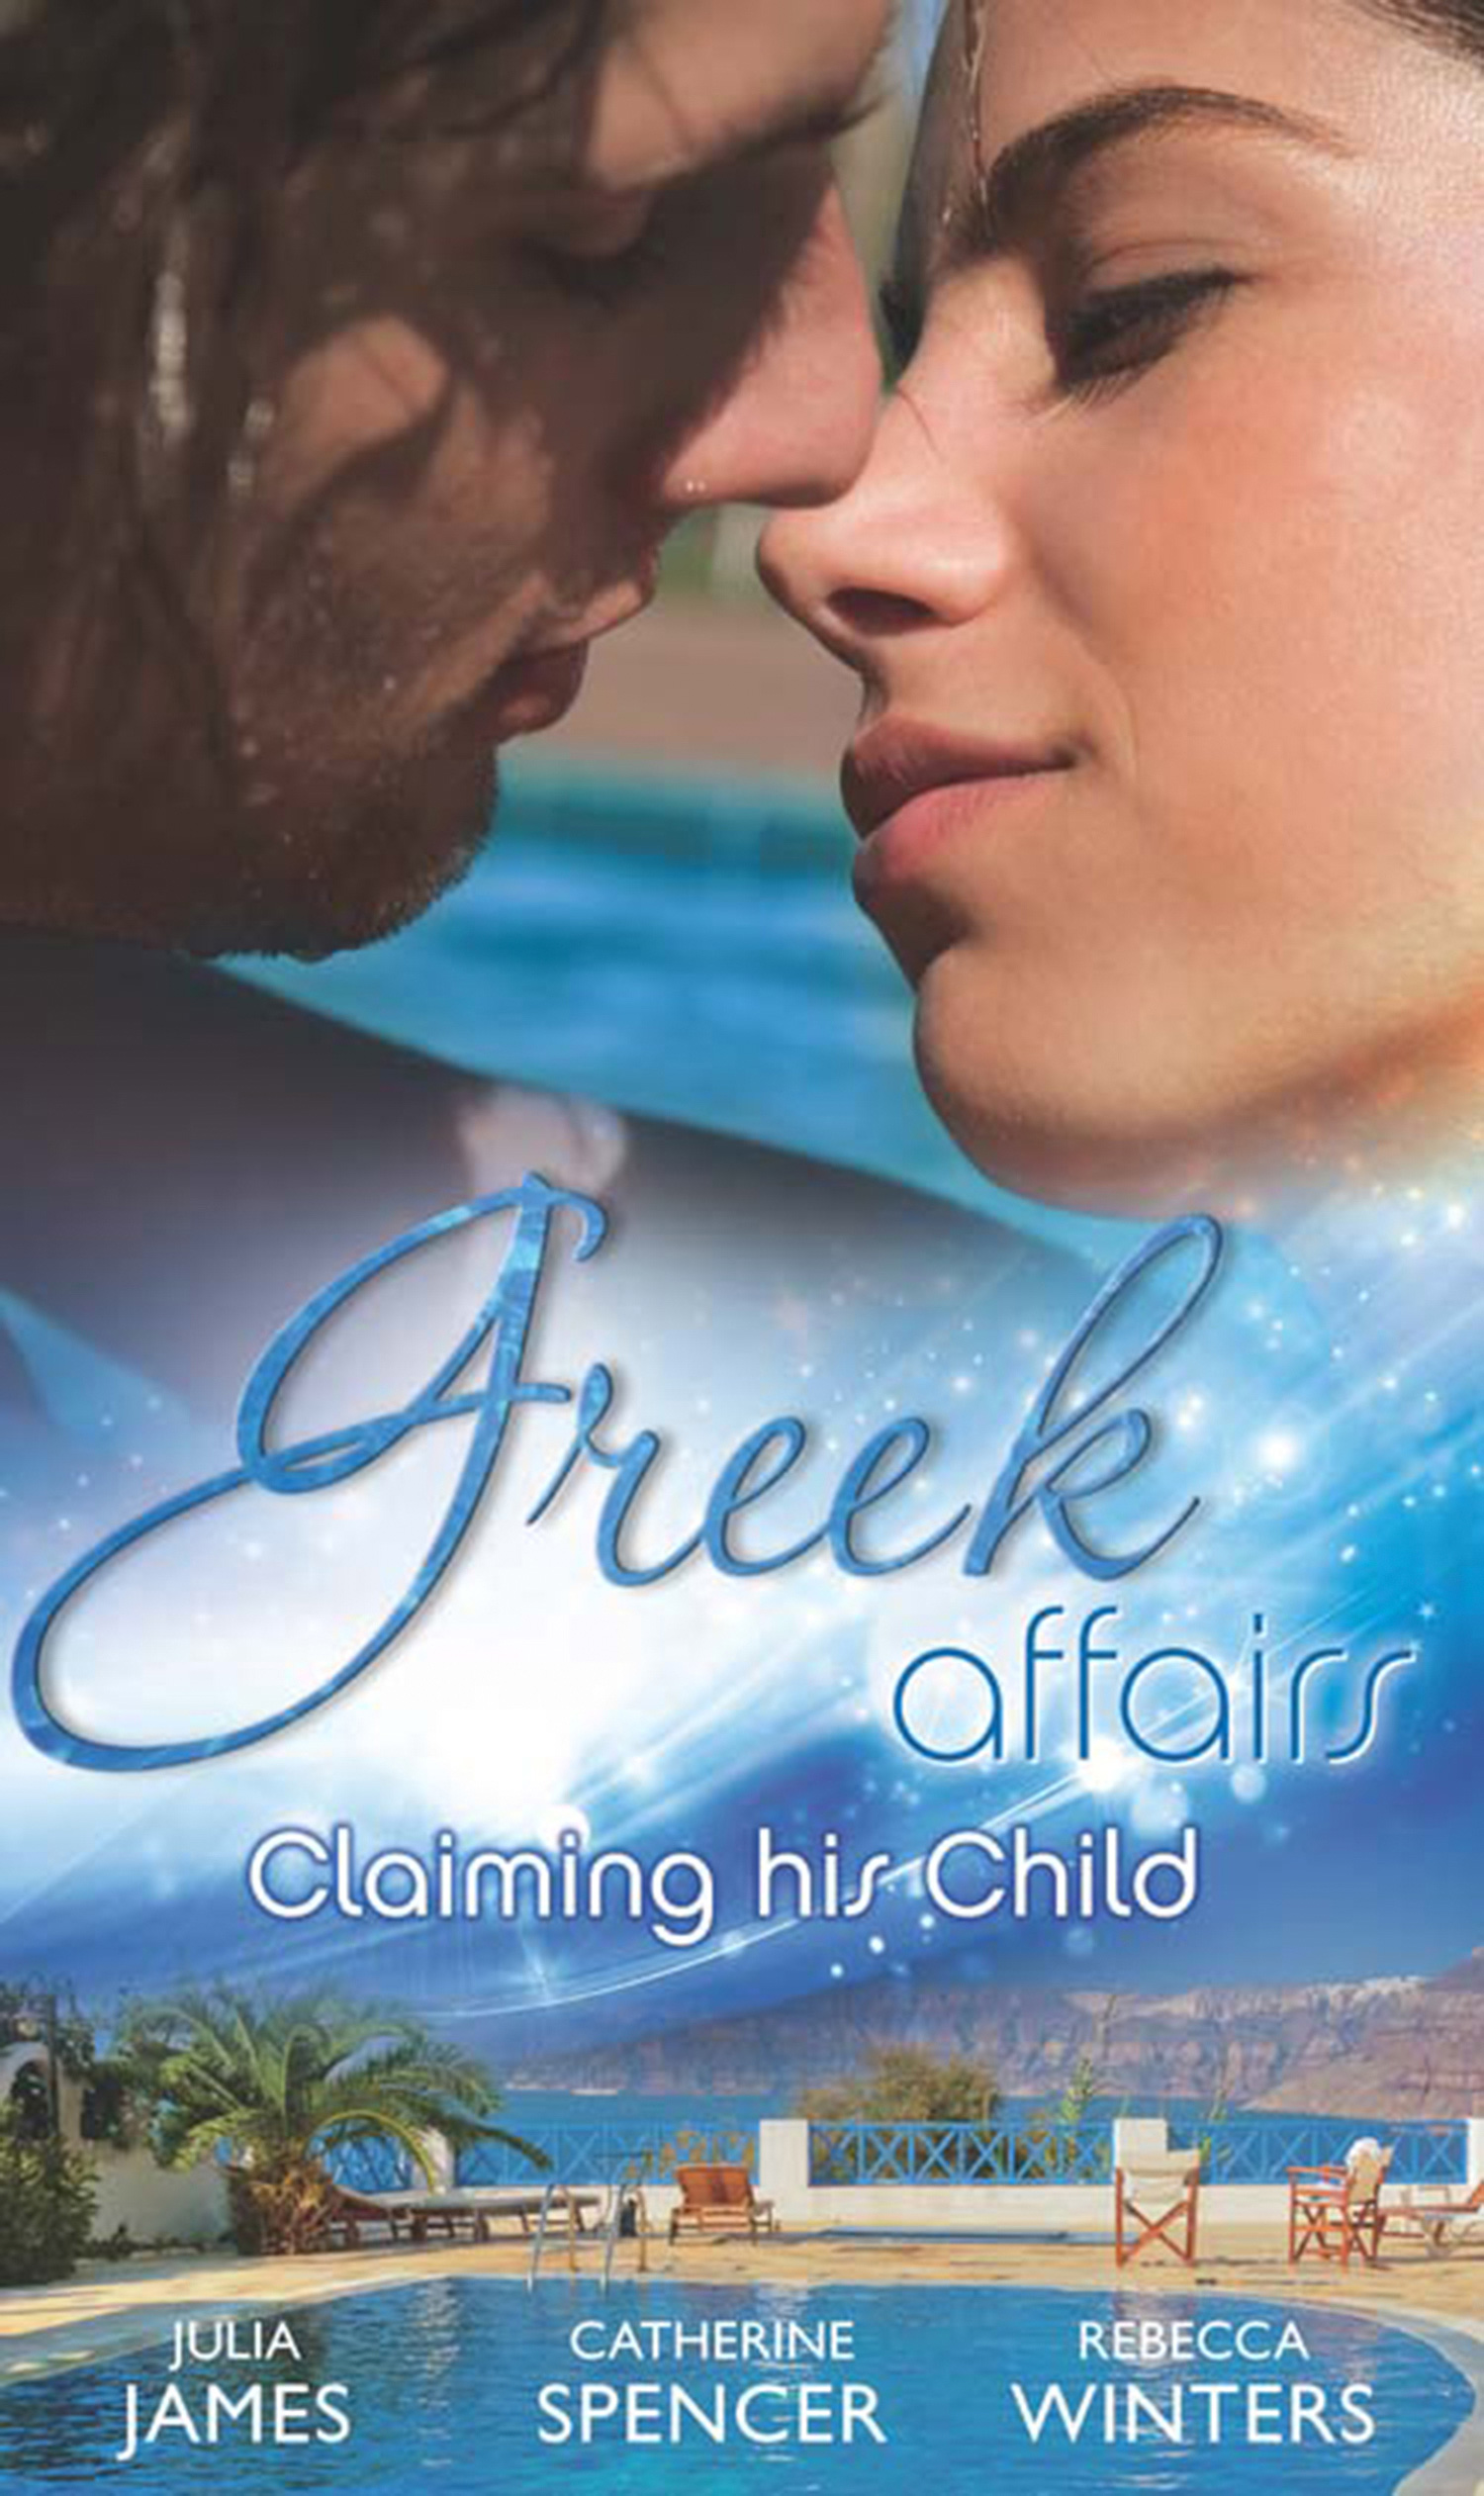 Greek Affairs: Claiming His Child